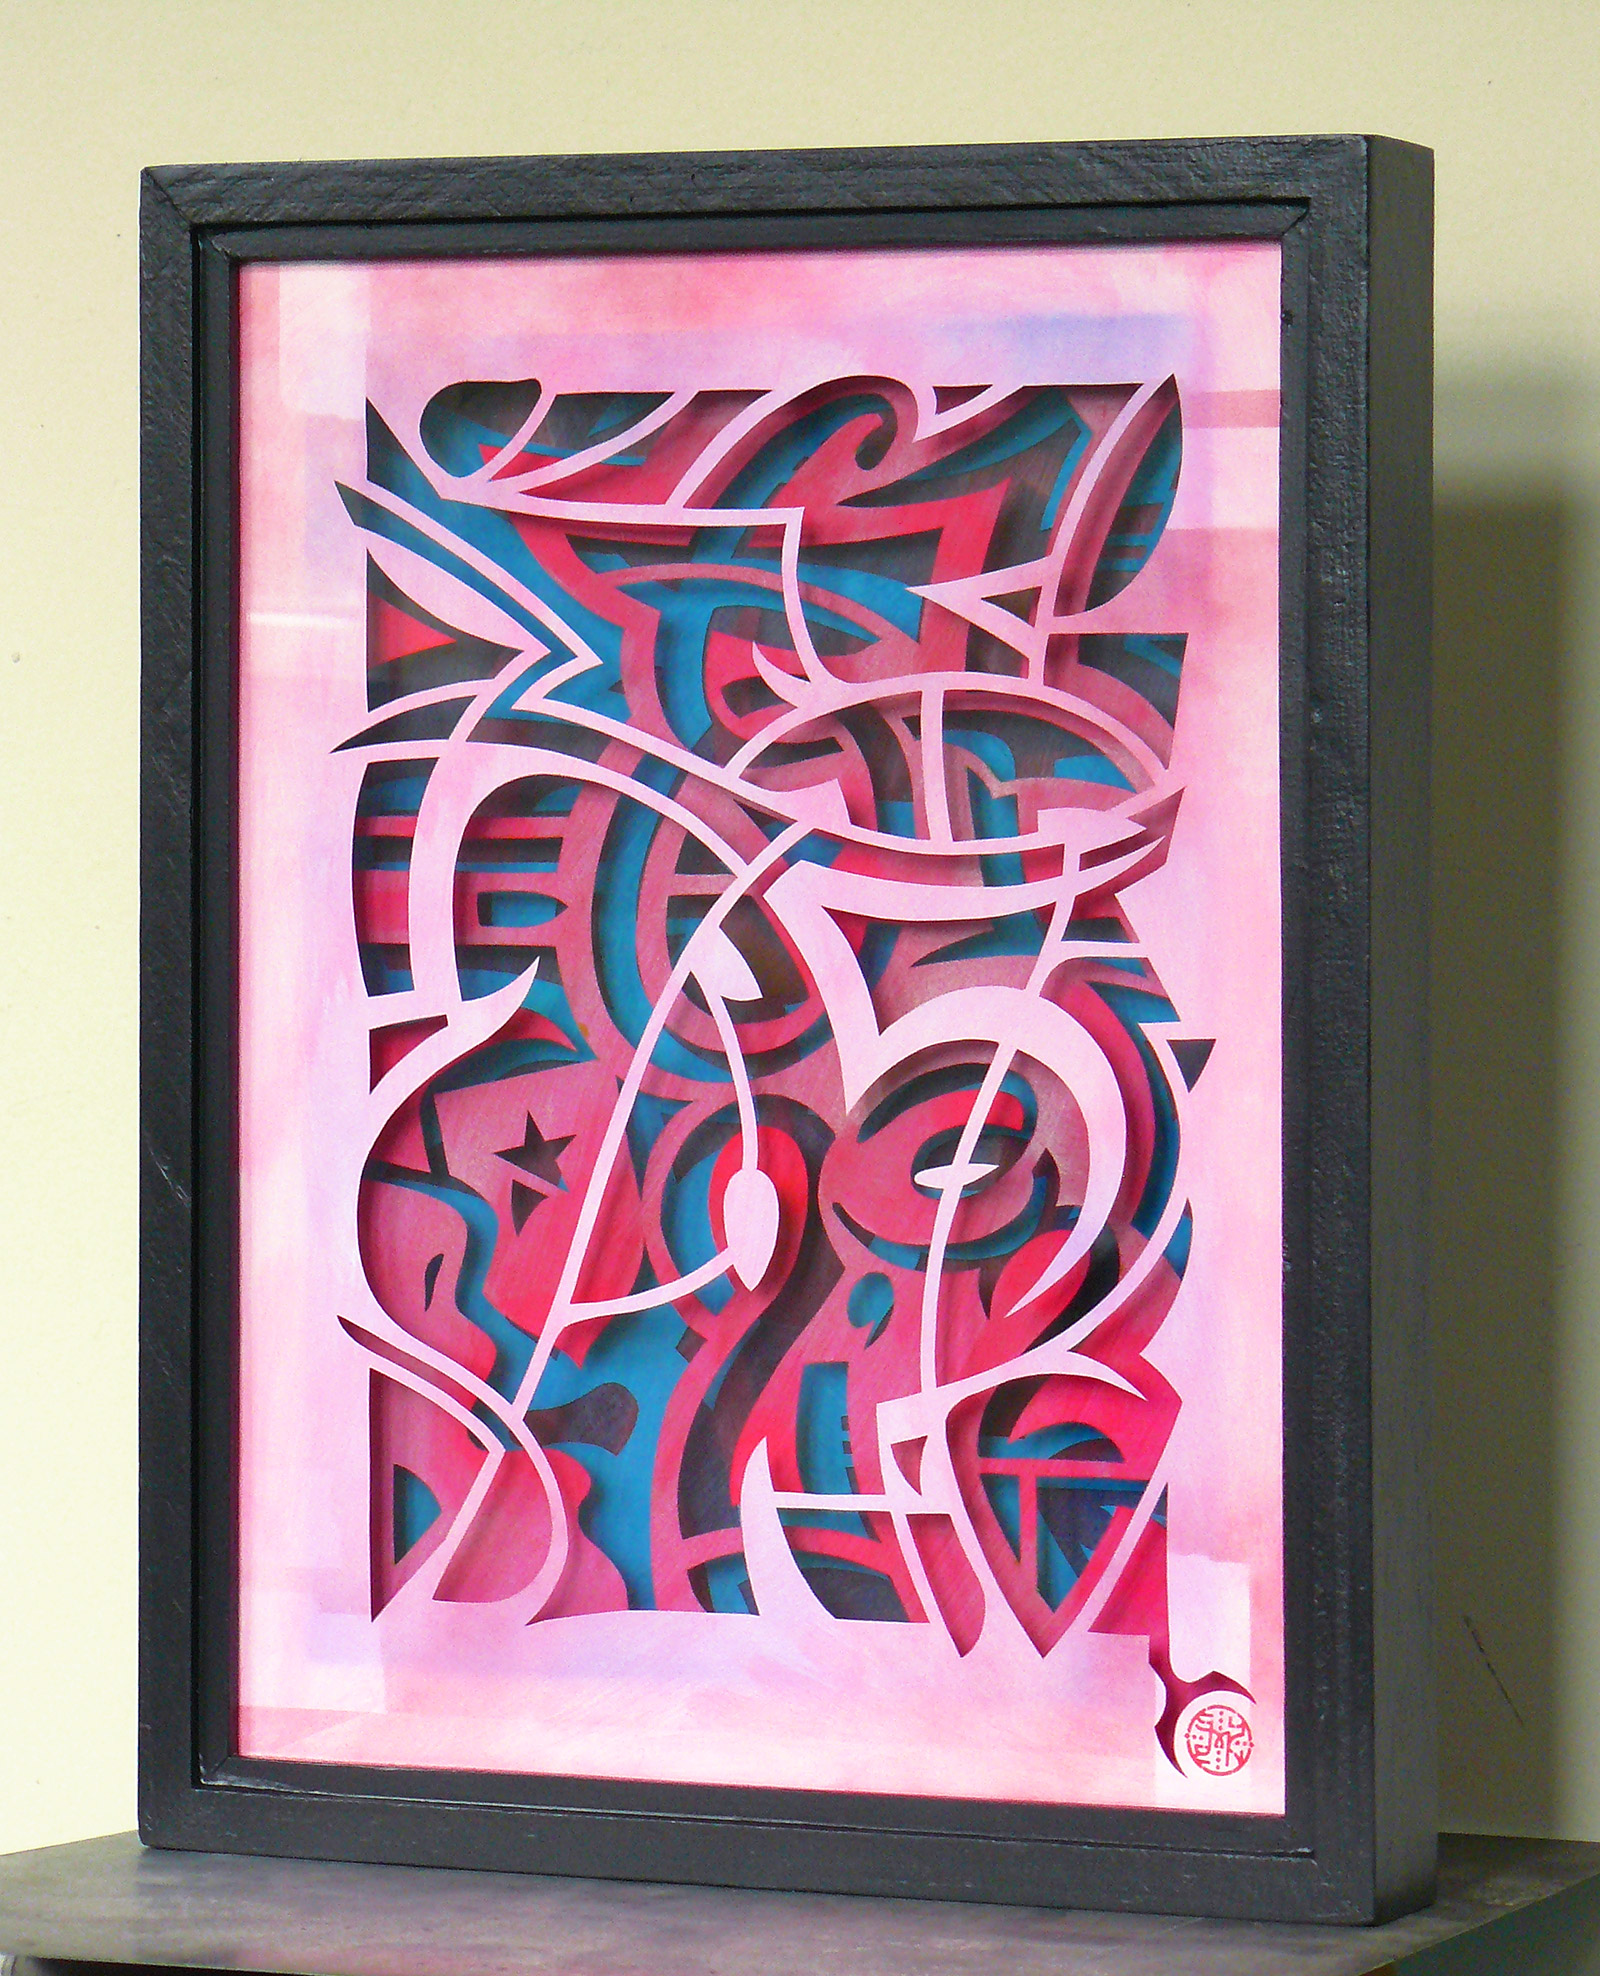 valutagrafie, euro art, Symen Veenstra, money art, paper art, pink, spray can